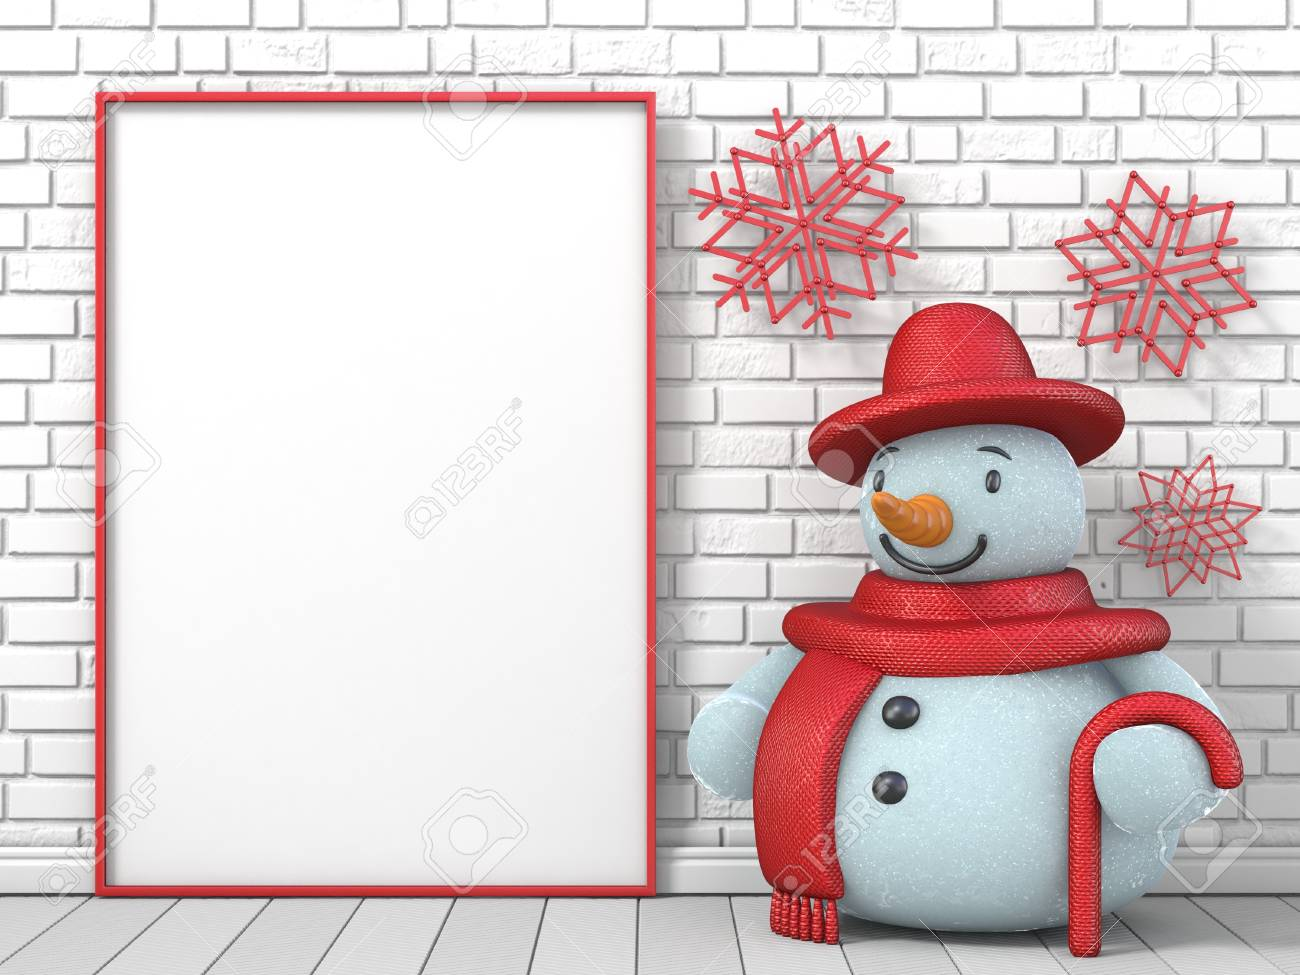 Mock Up Blank Picture Frame, Snowman And Red Popsicle Sticks.. Stock ...